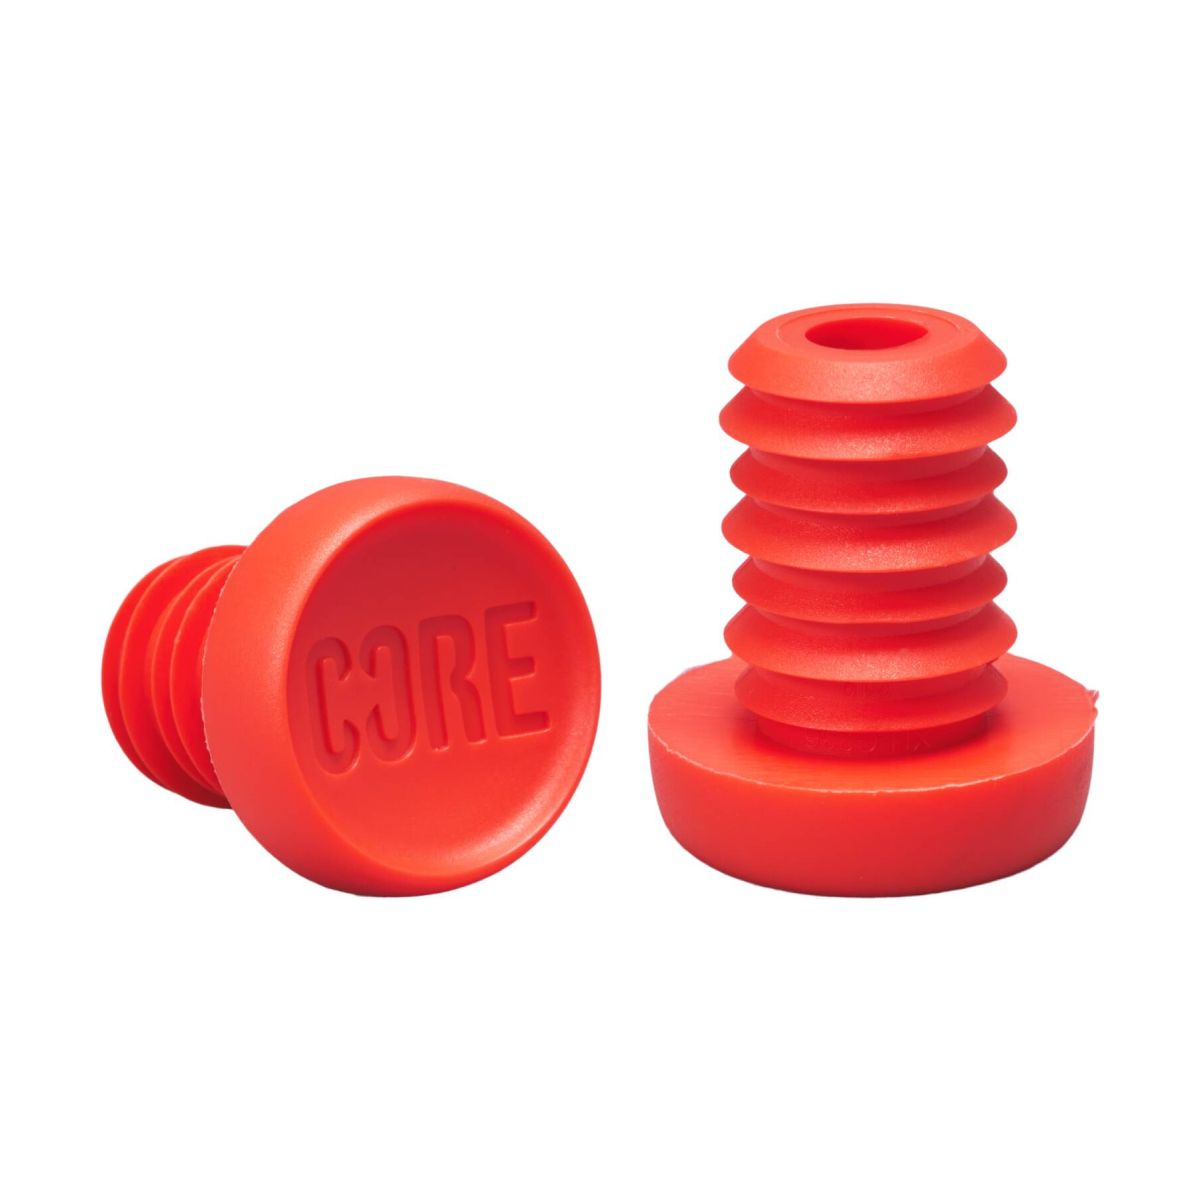 Barendy Core Red